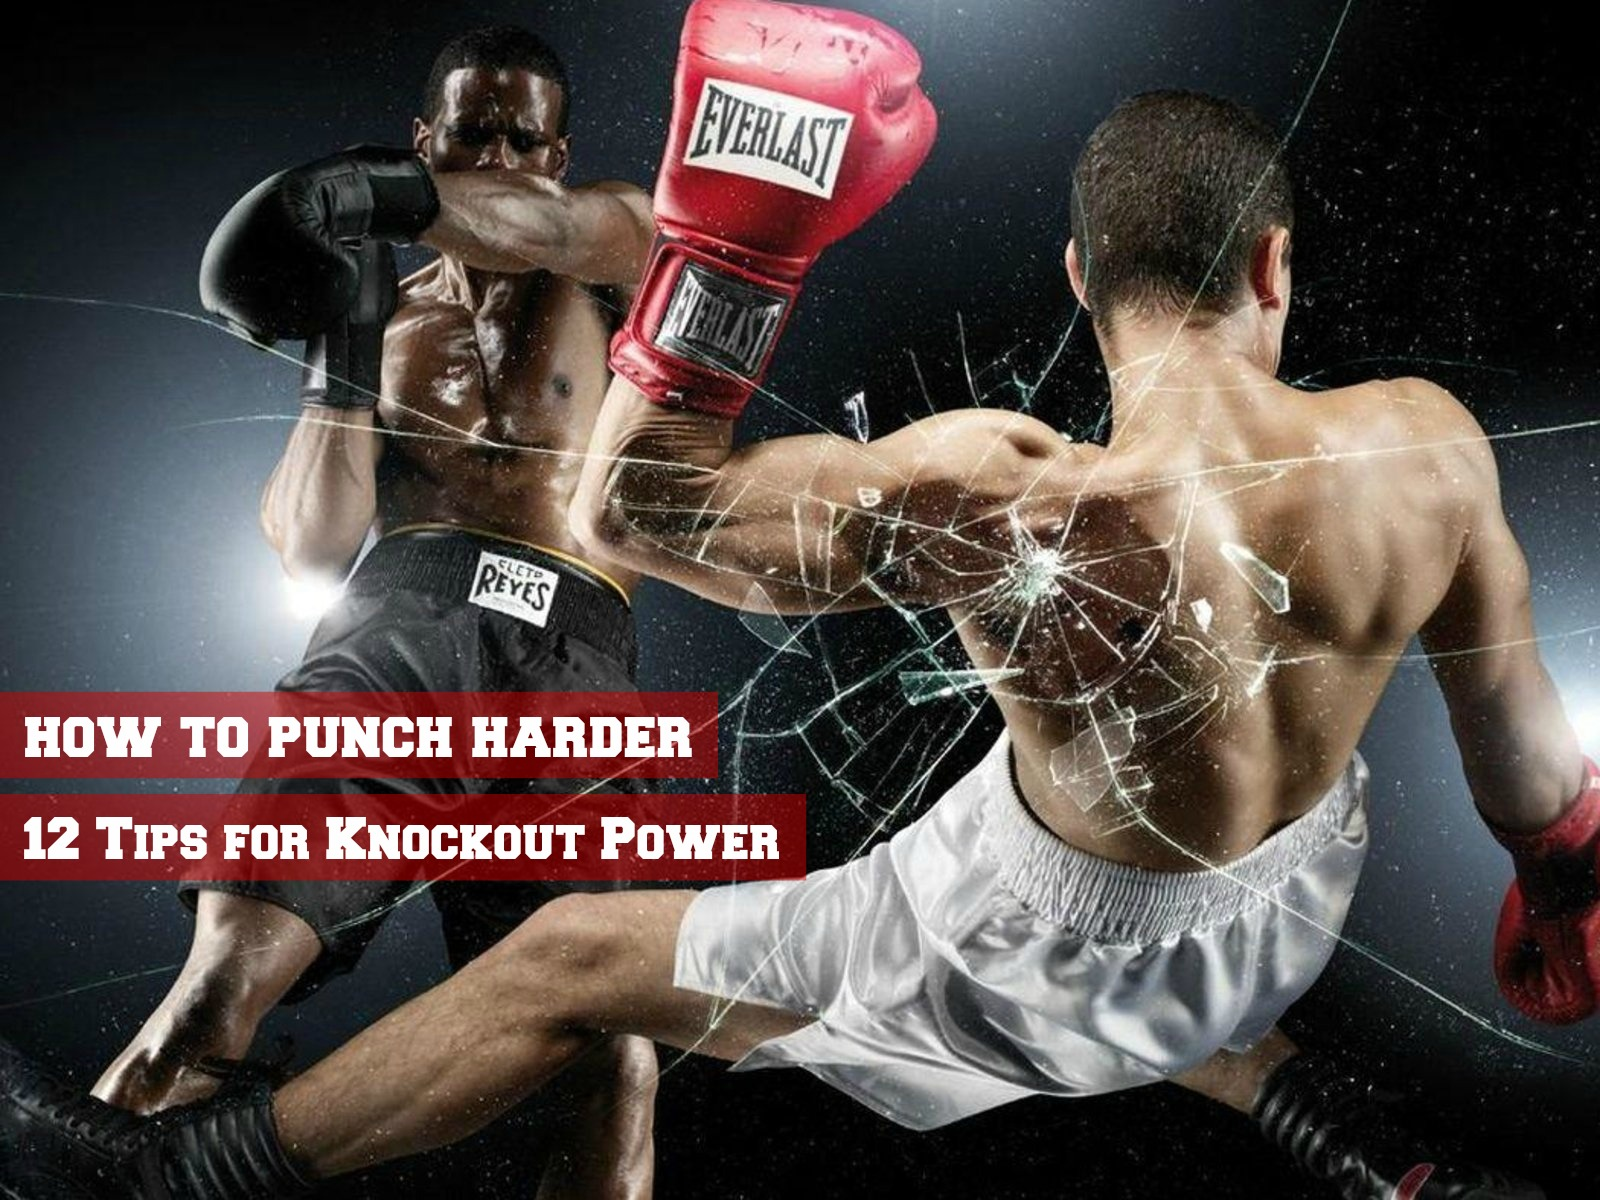 Dream Wallpaper Quotes How To Punch Harder 12 Tips For Knockout Power Warrior